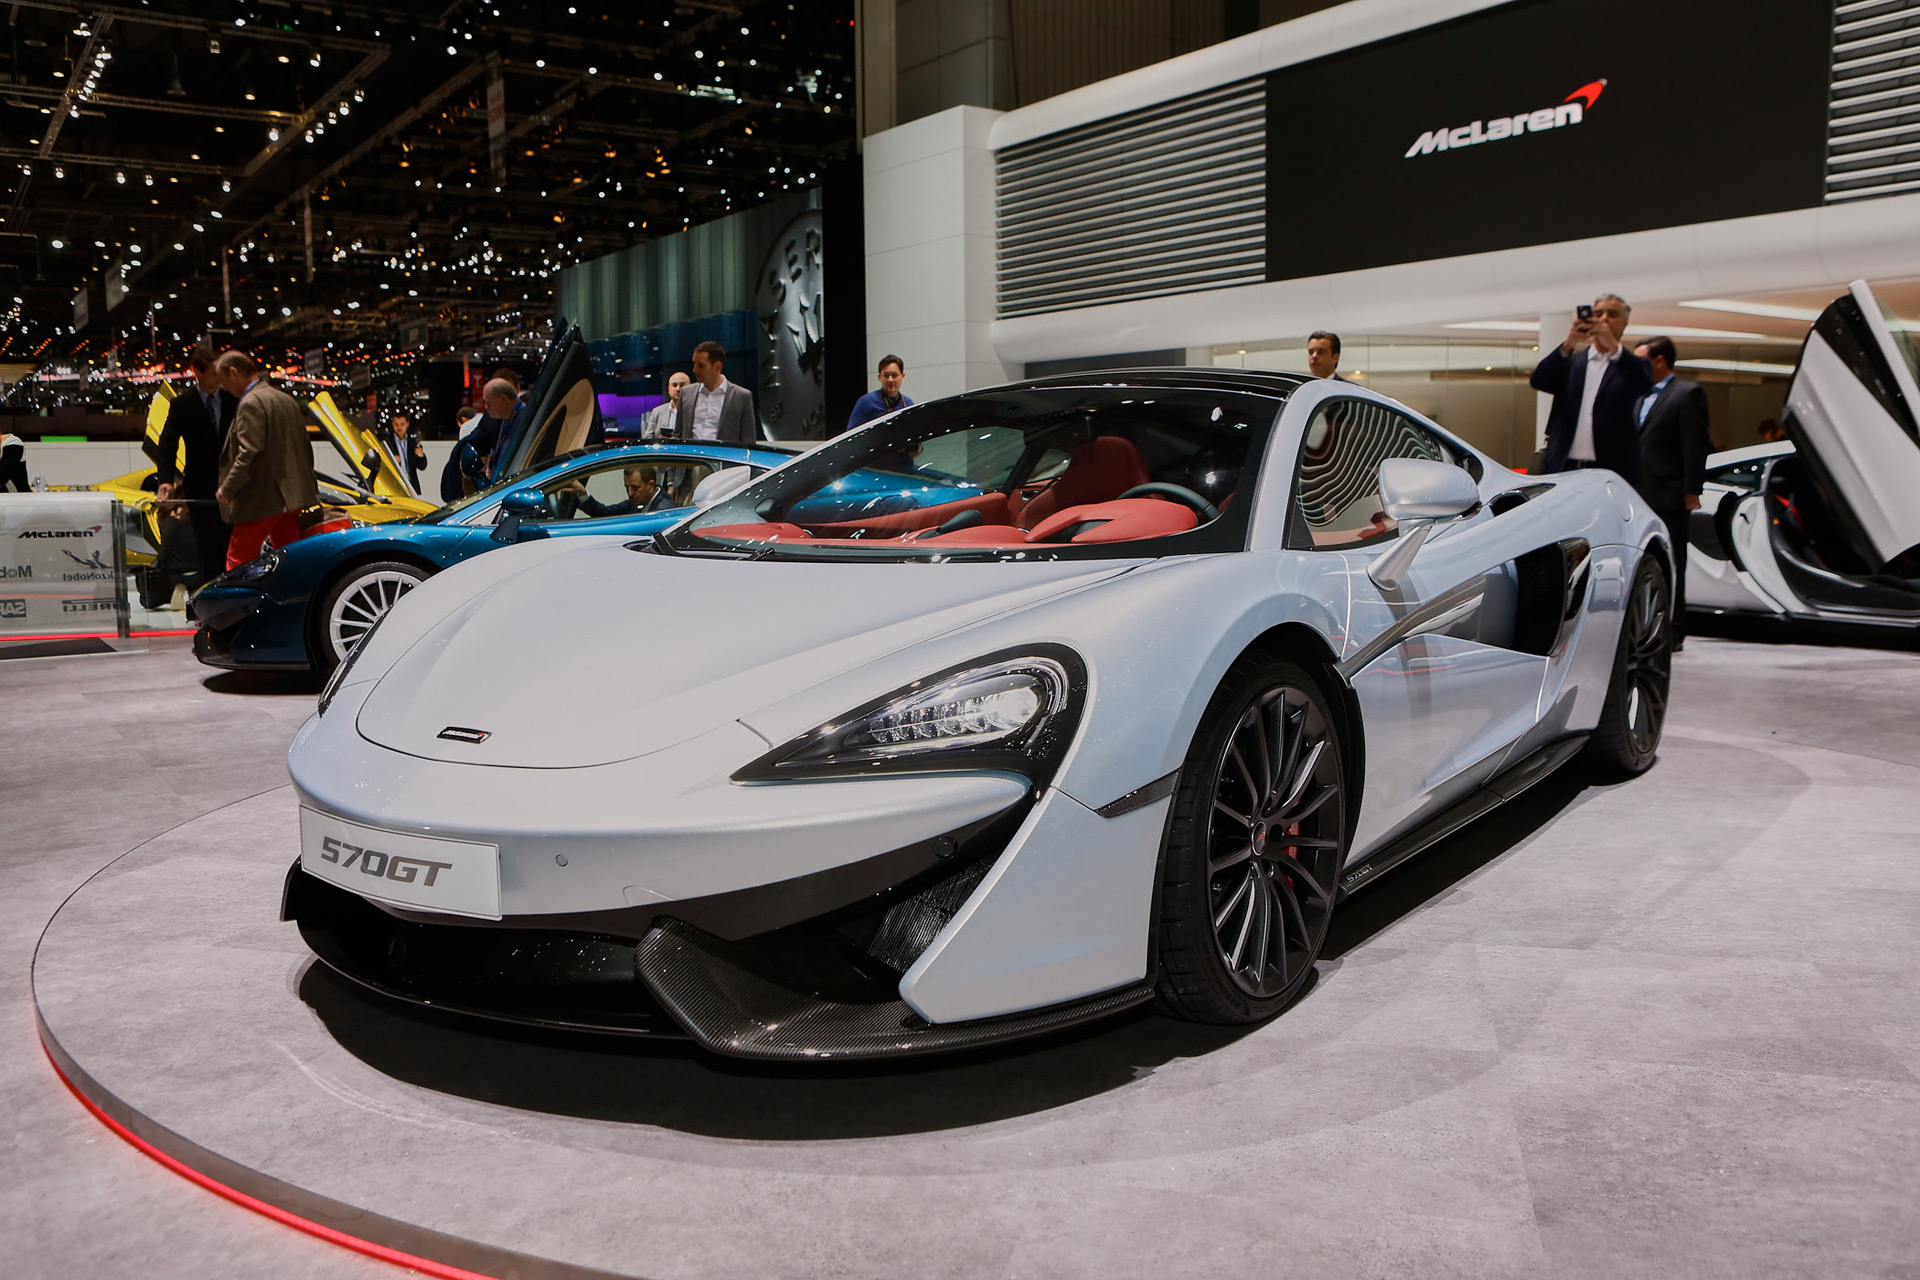 McLaren's most practical car is the 570GT